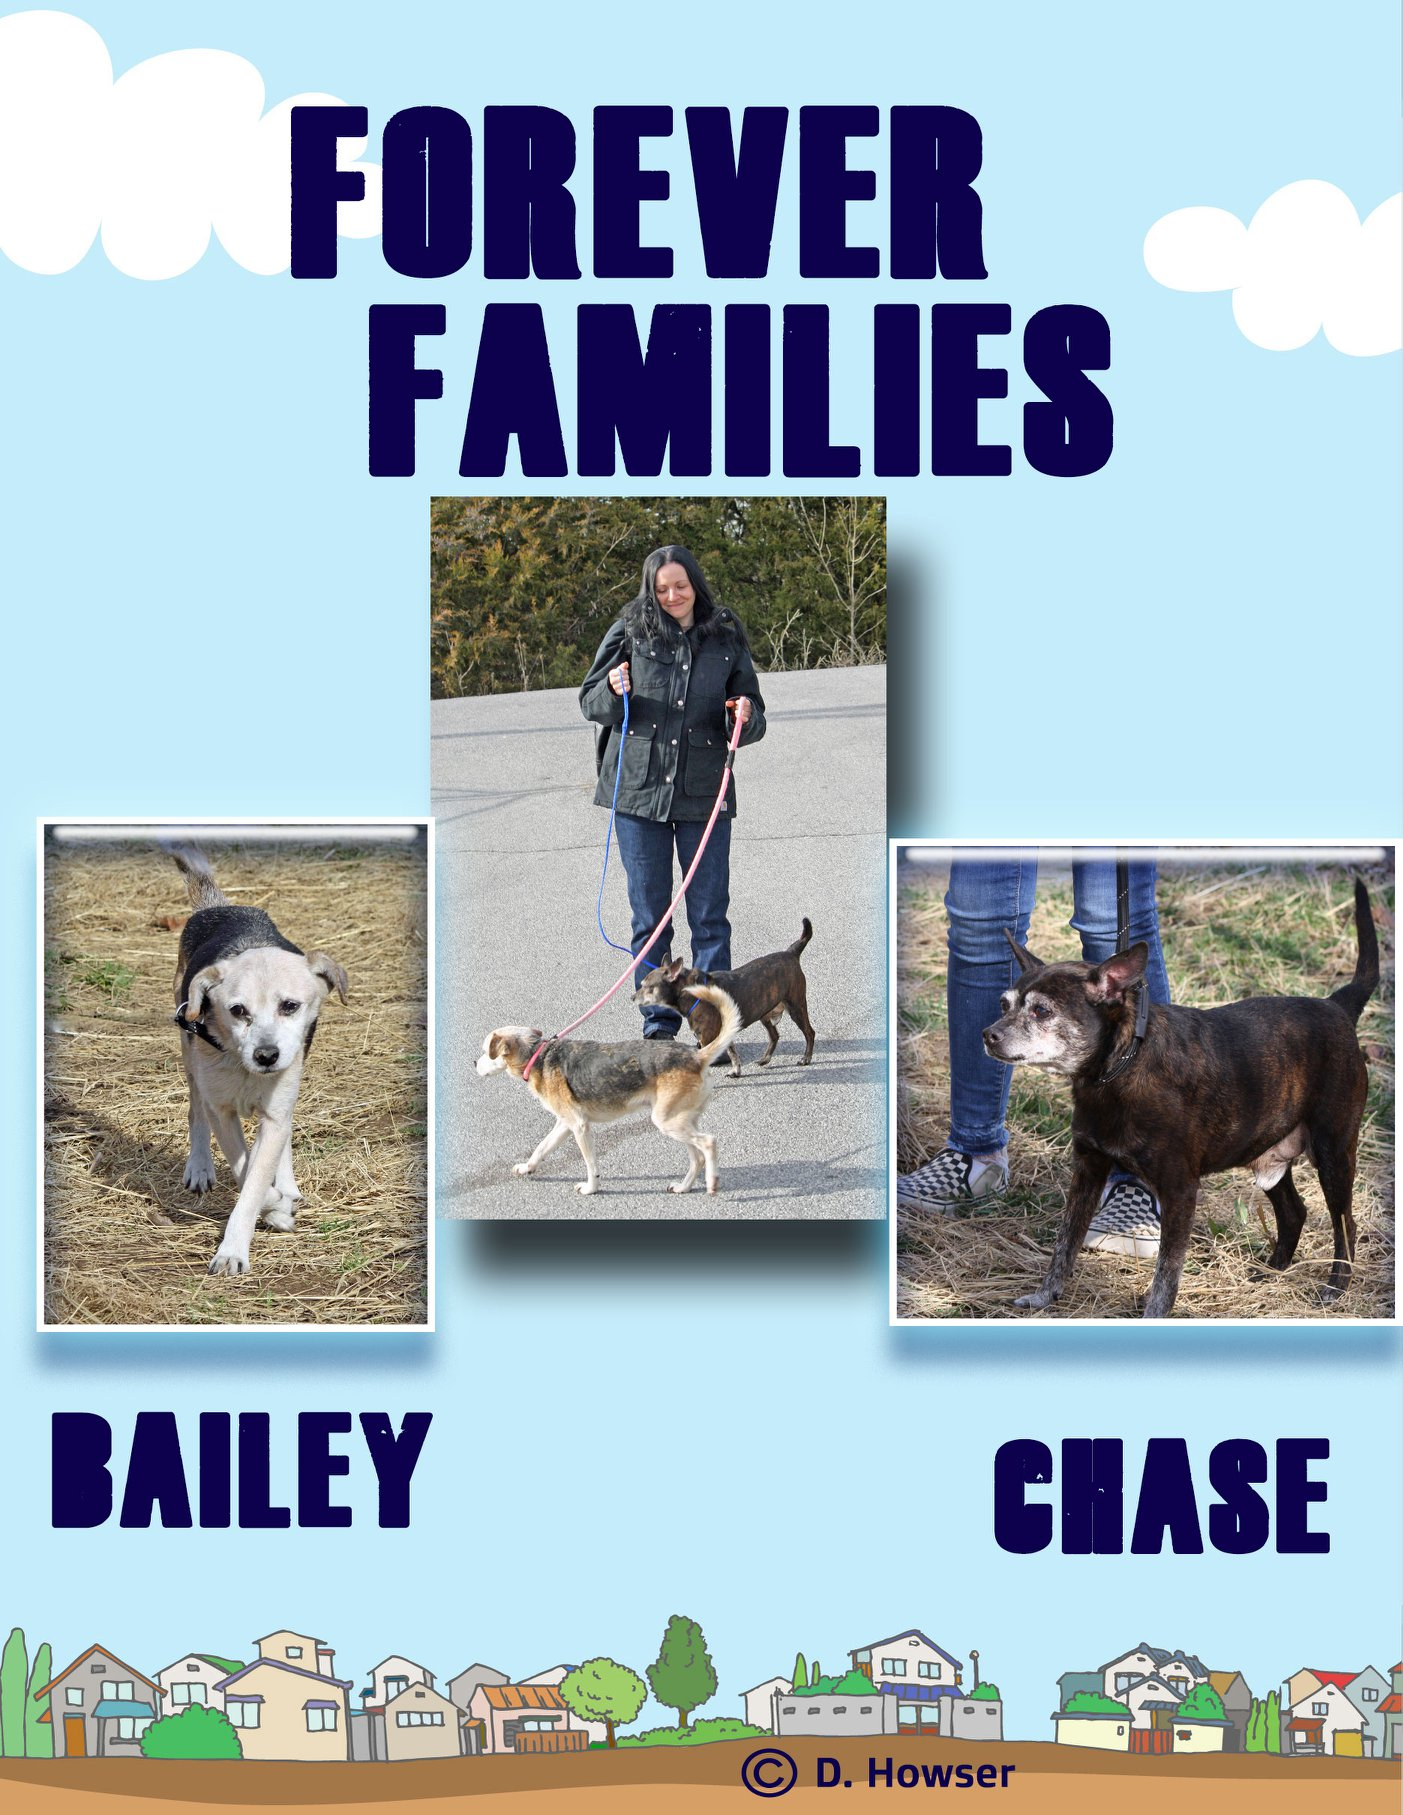 Two senior shelter dogs -- Bailey and Chase -- who were rescued by the woman pictured.